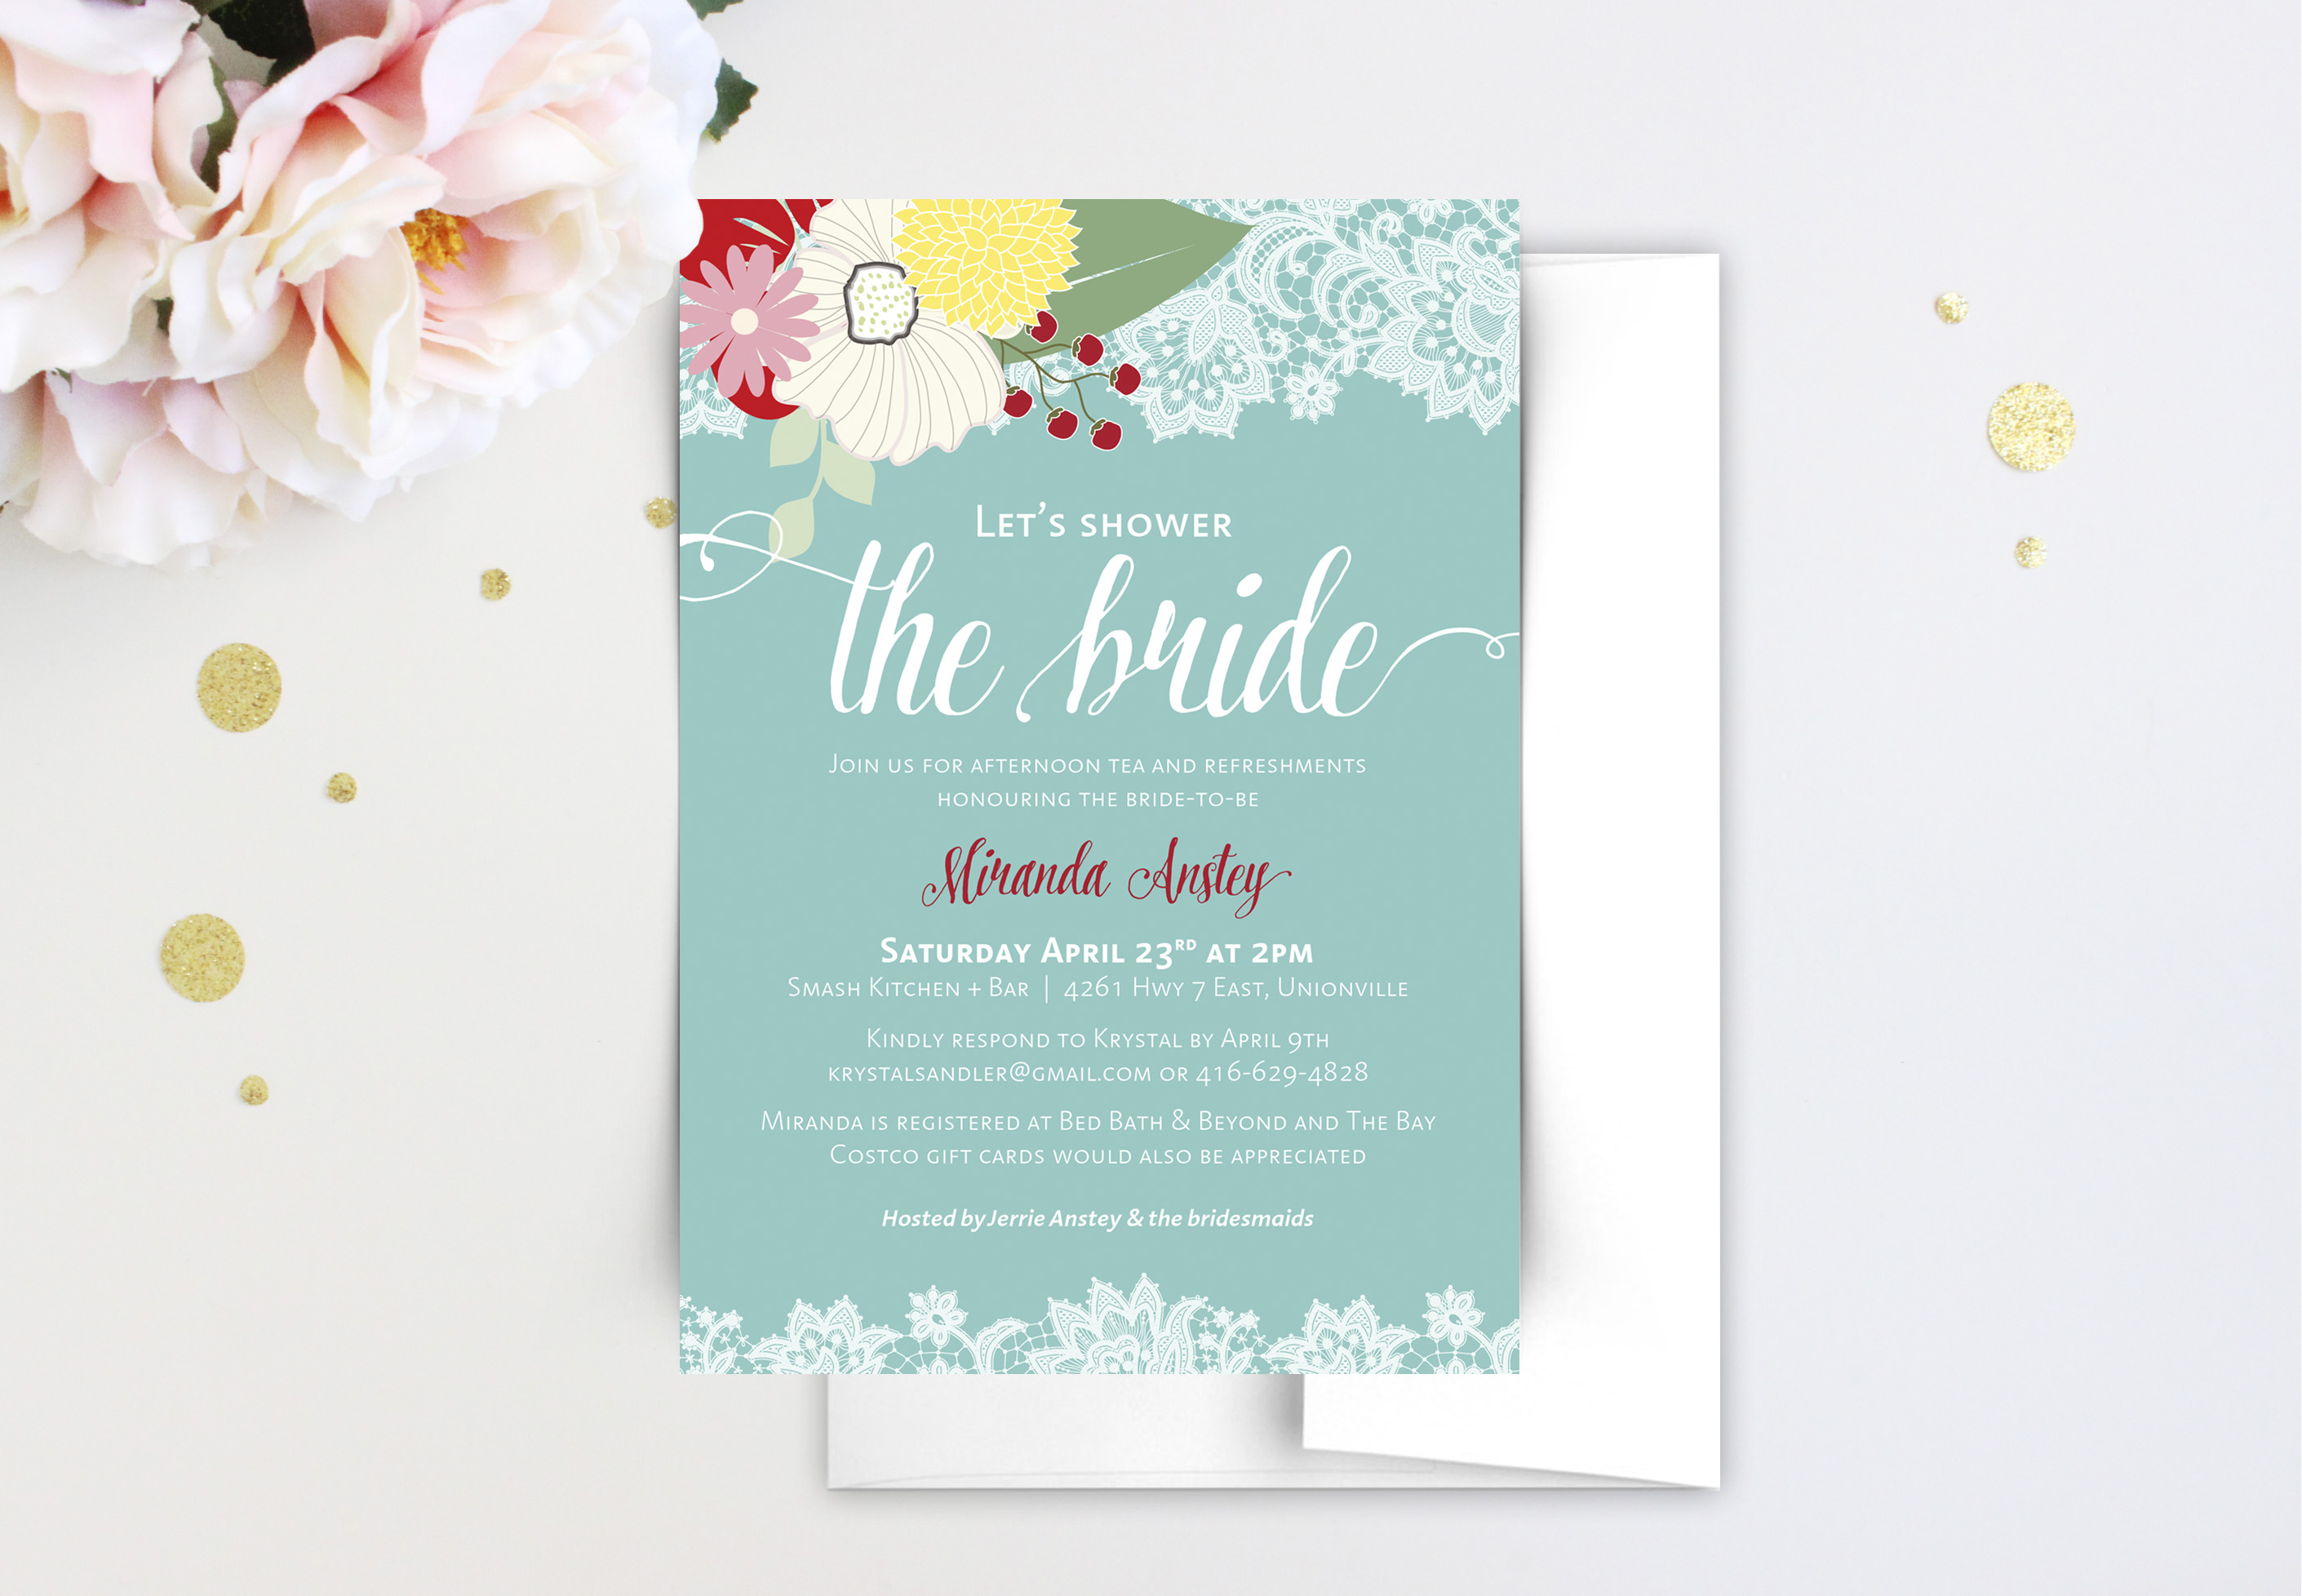 Baby shower invitation baby objects bridal shower invitations beautiful bridal shower invitations lace bridal shower invitations custom bridal kristyandbryce Image collections